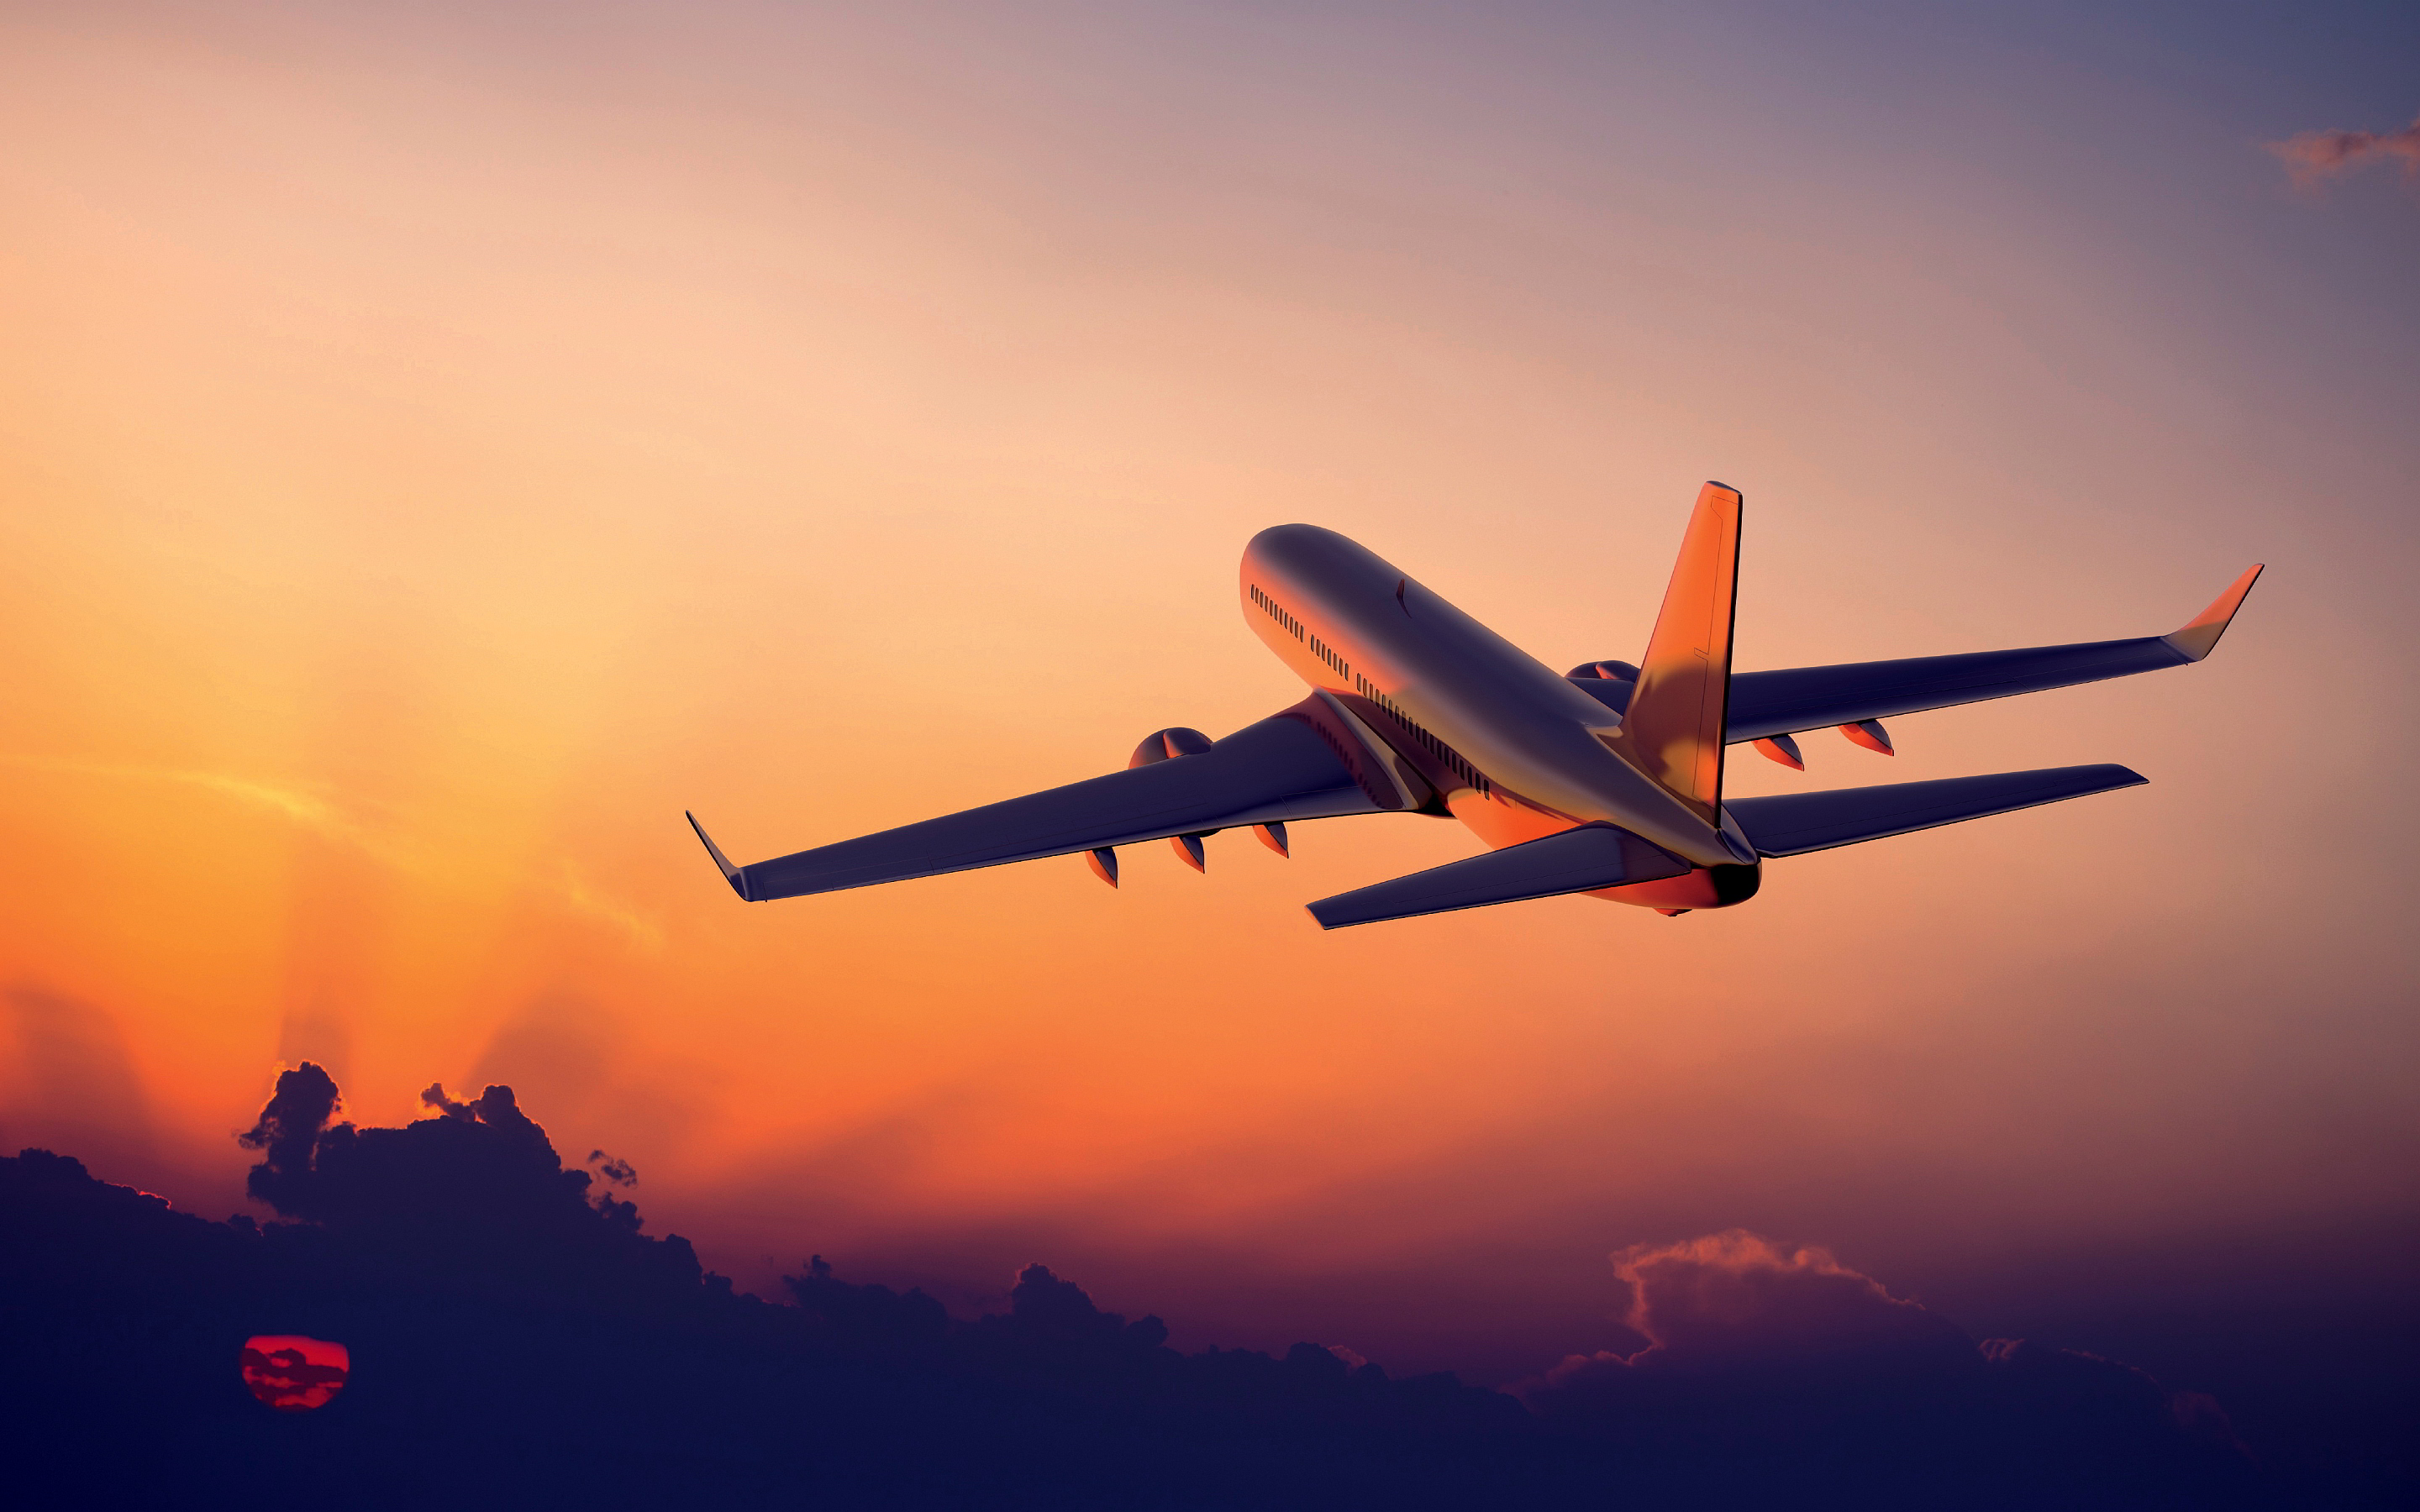 Airplane Sunset is free HD wallpaper. This wallpaper was upload at June 19, 2015 upload by photographyw in Aerial.